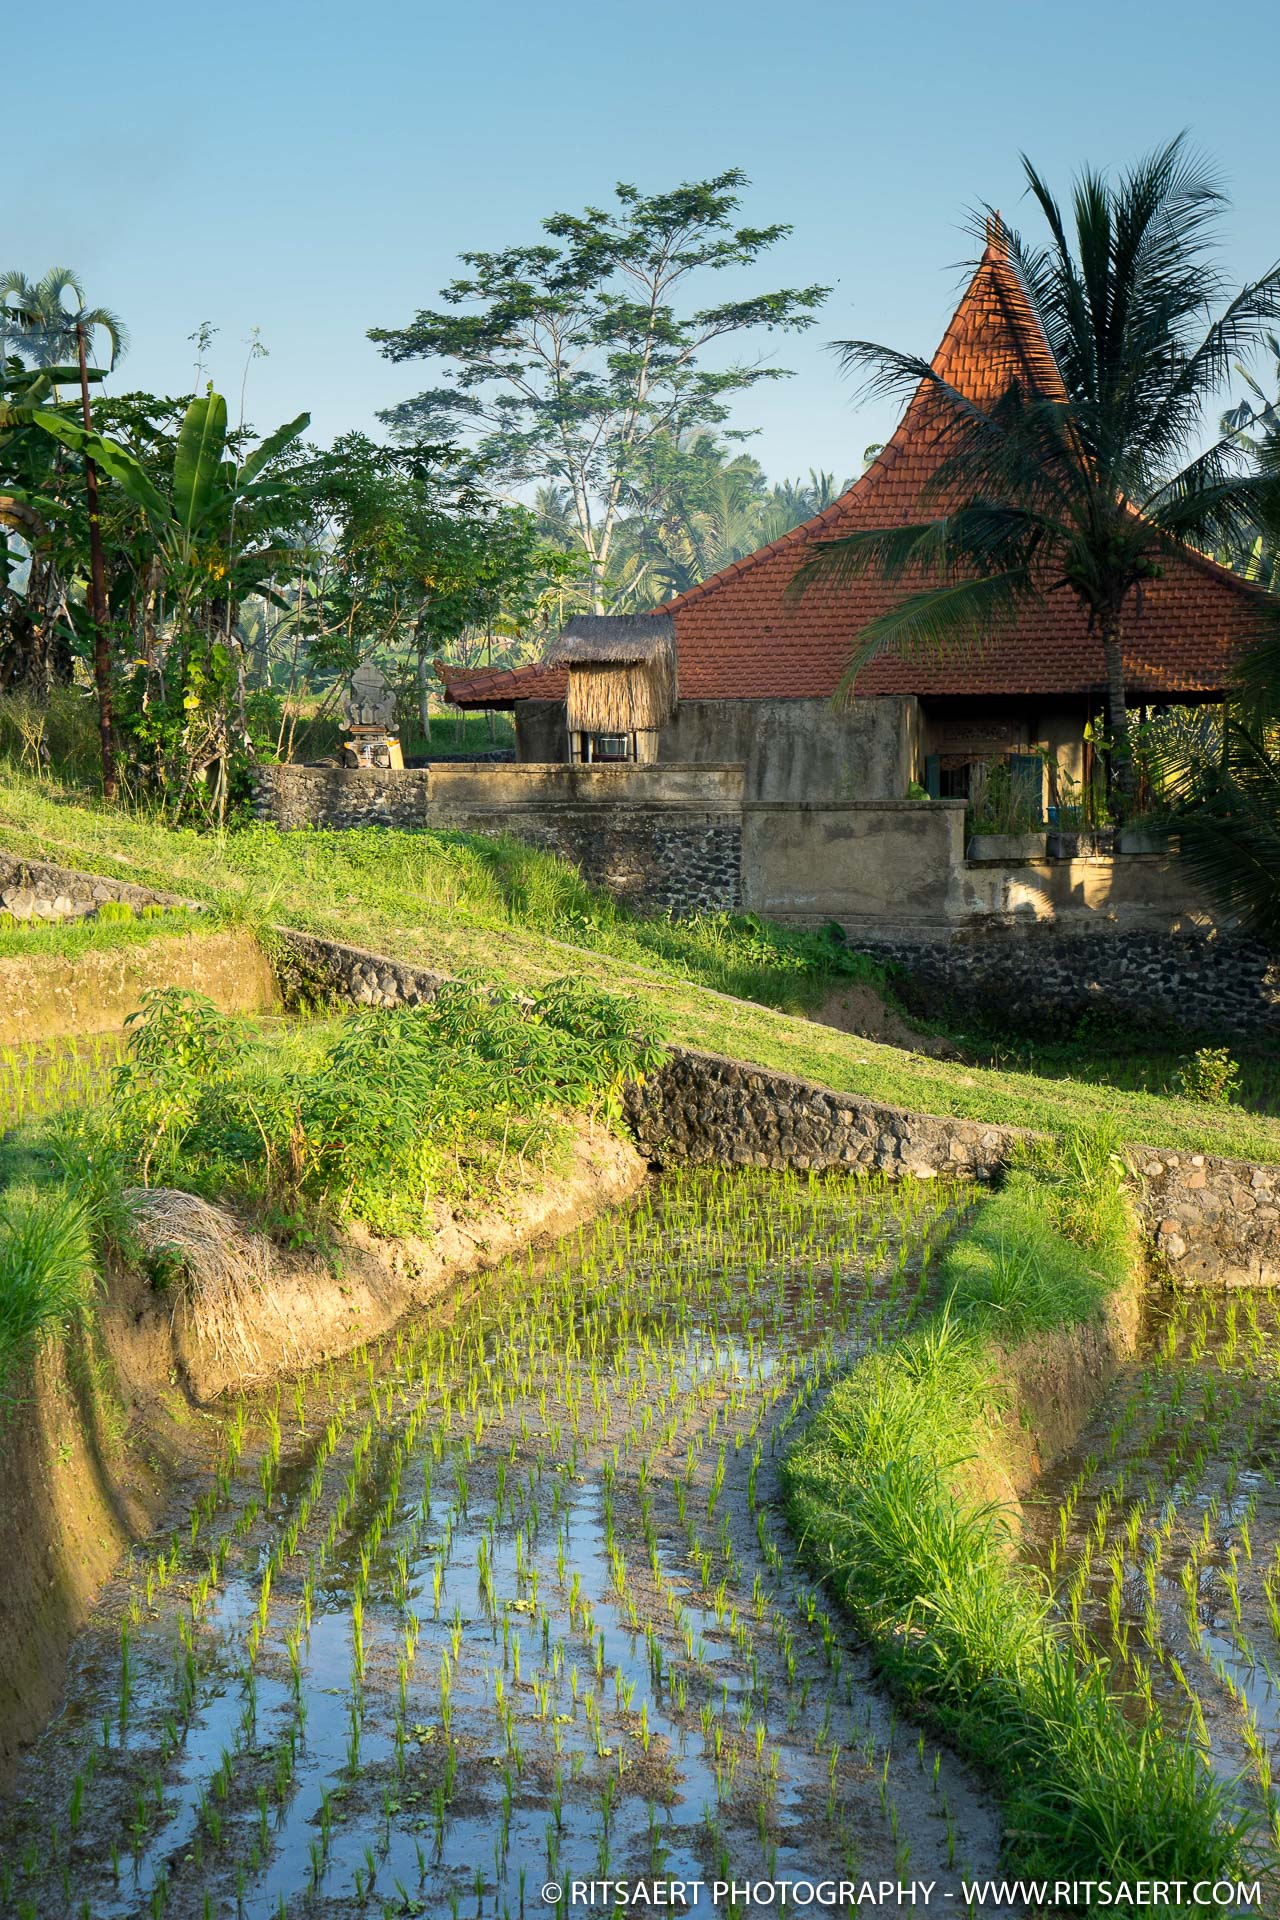 Growing the rice - Bali - Indonesia